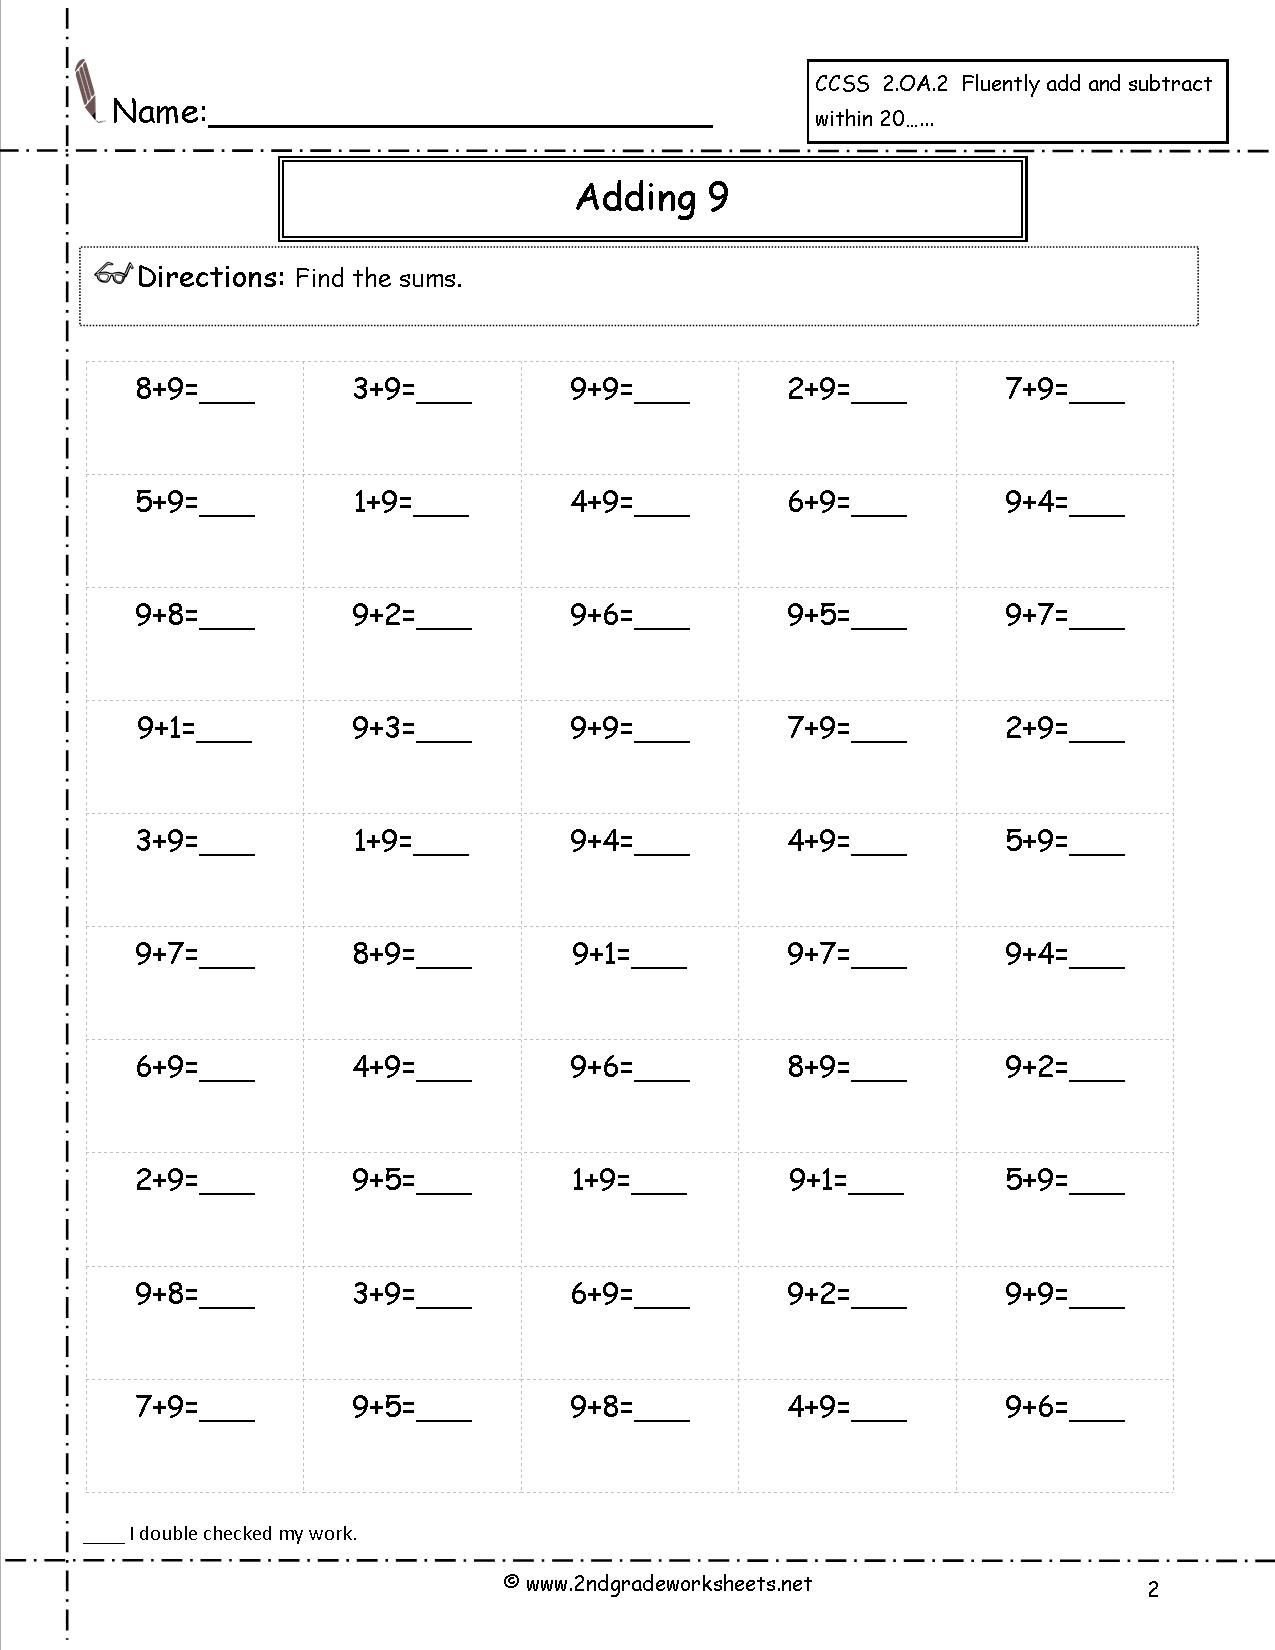 Adding Nine Addition Facts Worksheet